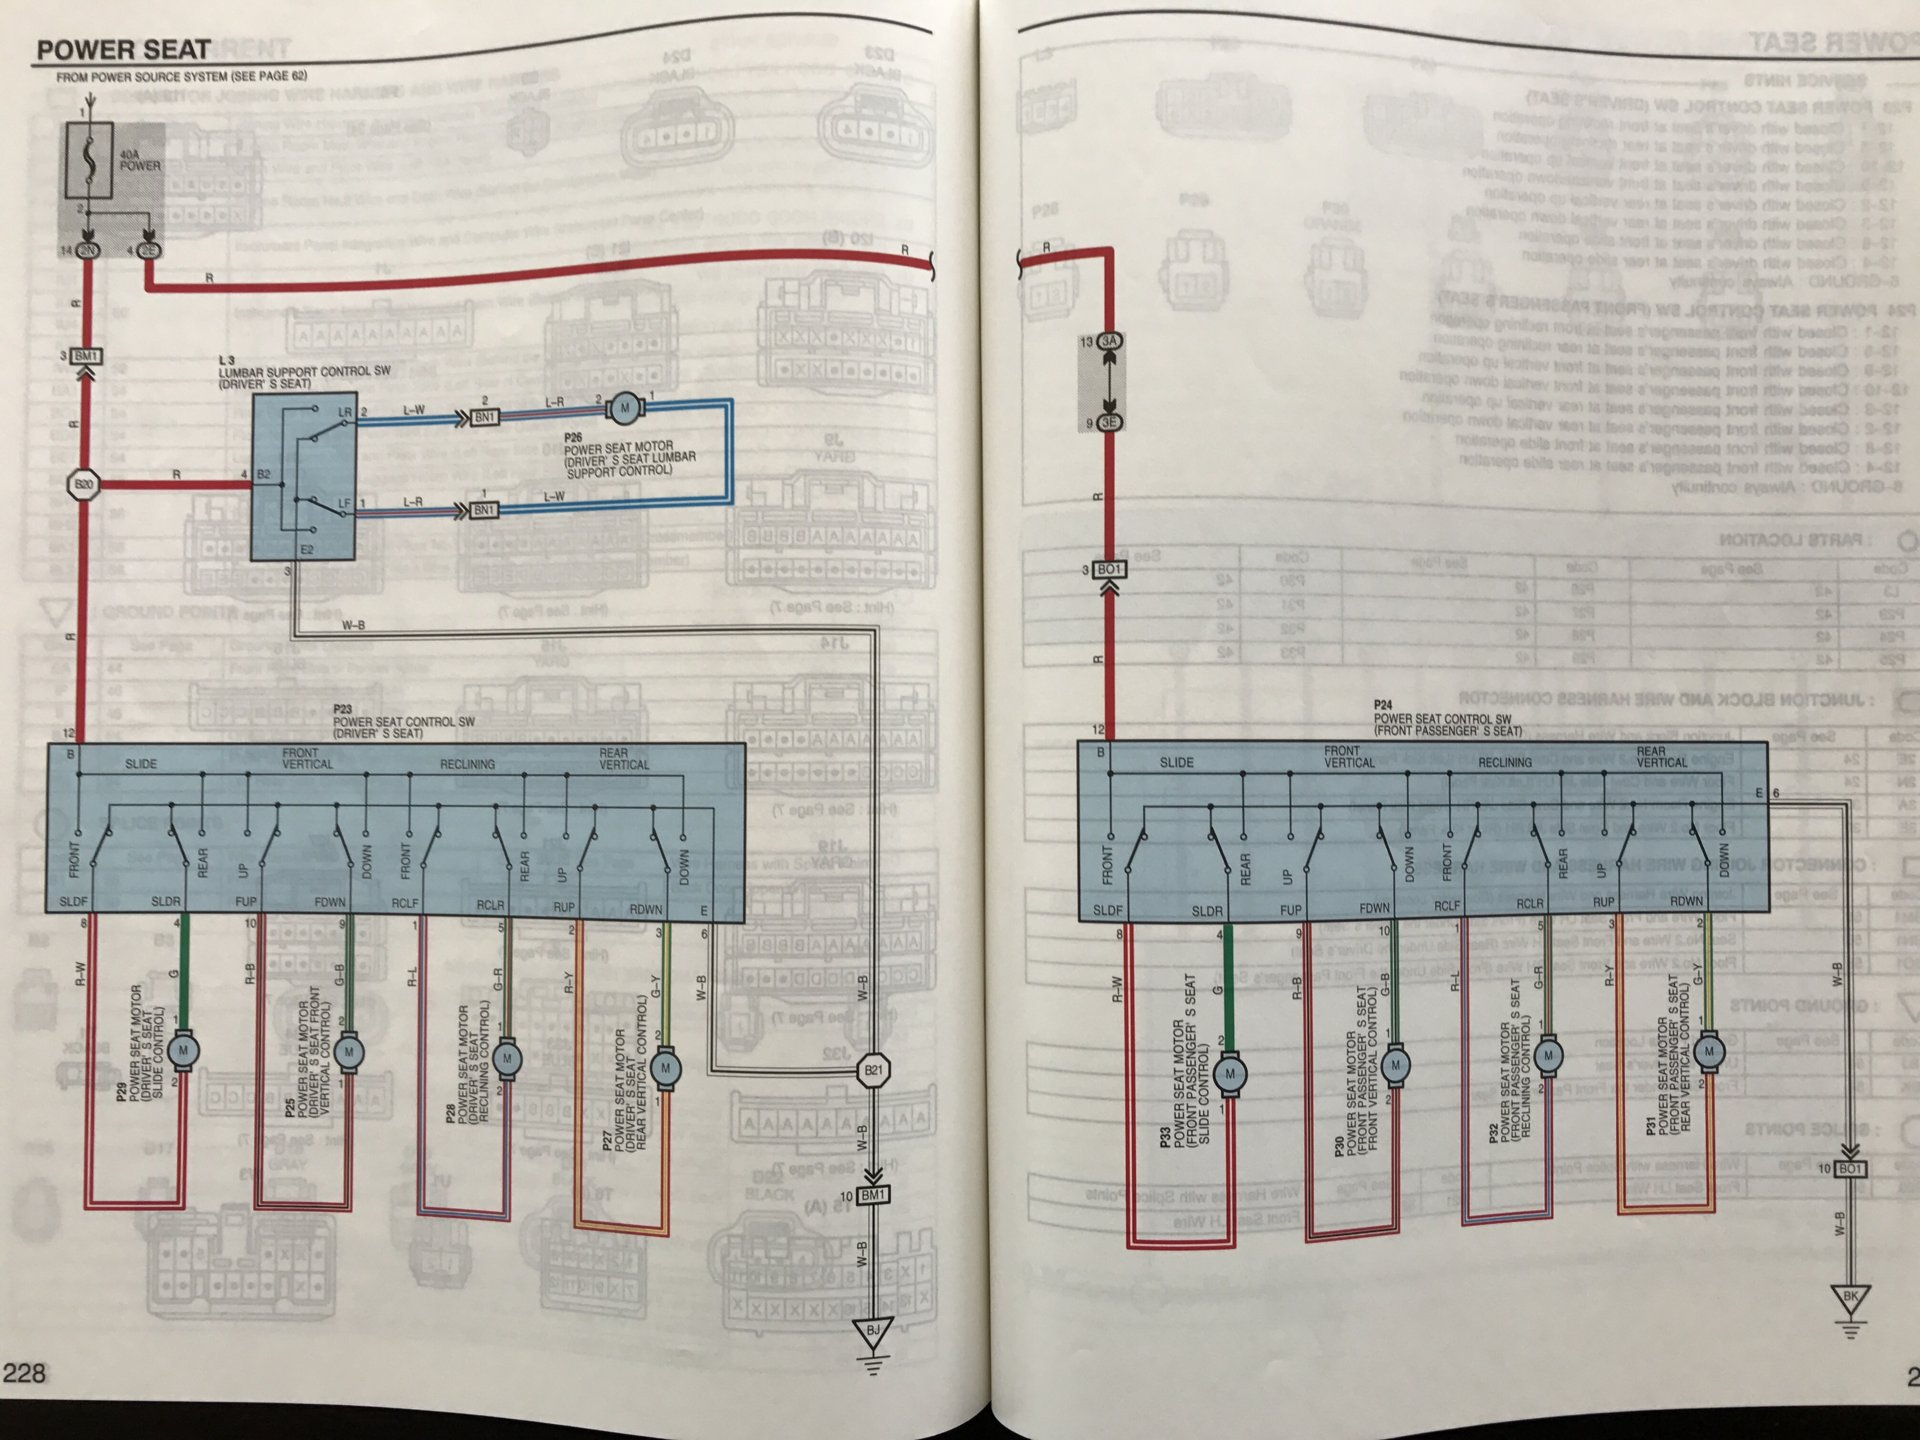 hight resolution of i need a wiring diagram for the front electric seats of 98 lx470 img 0120